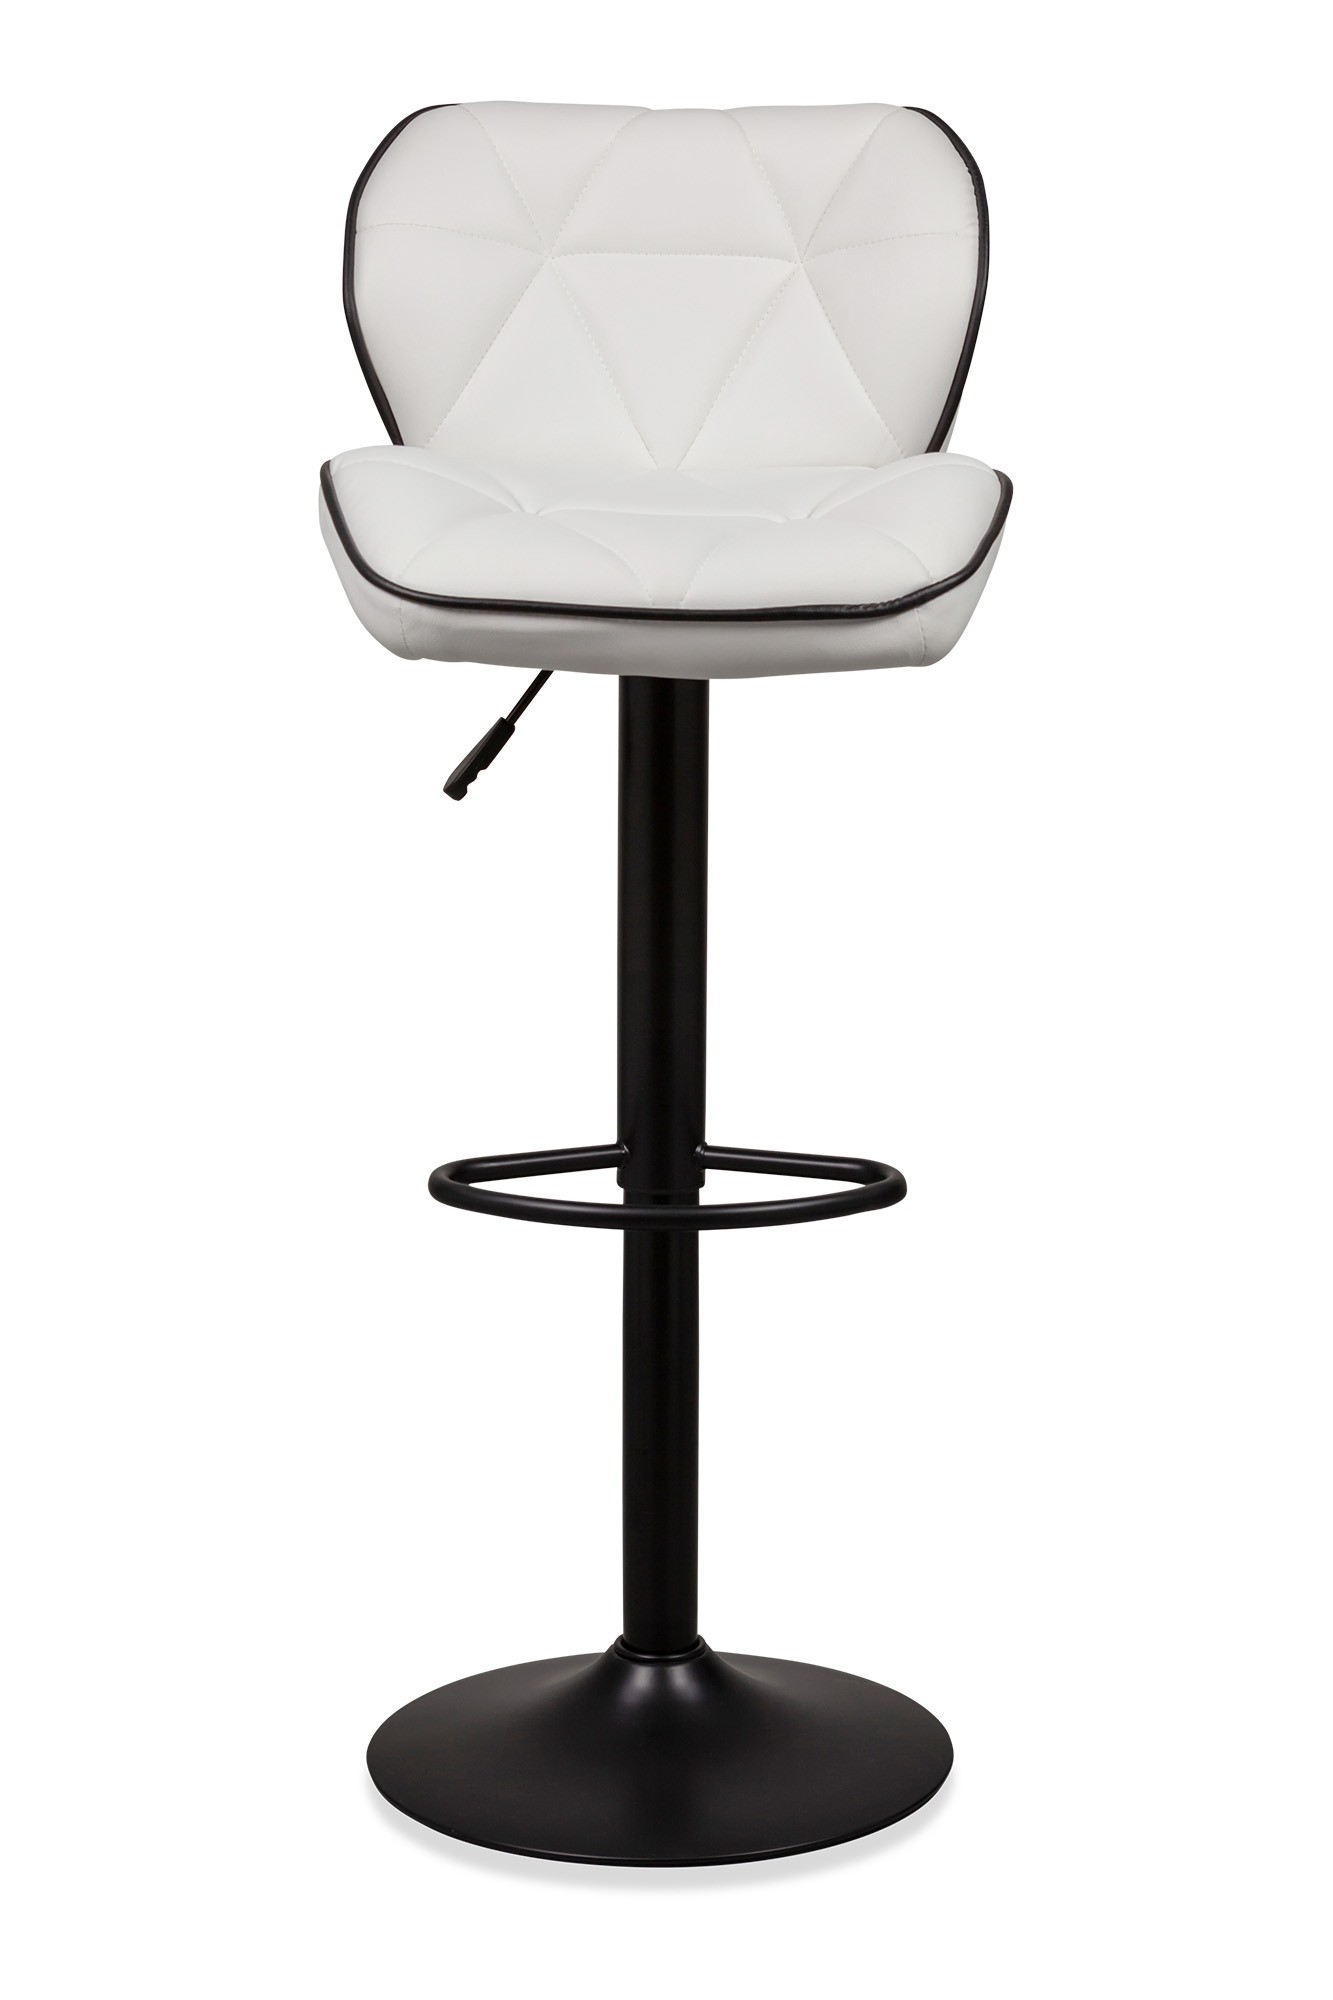 Living Room Stools Uk Kreindel Bar Stool With Black Base White Bar Stools